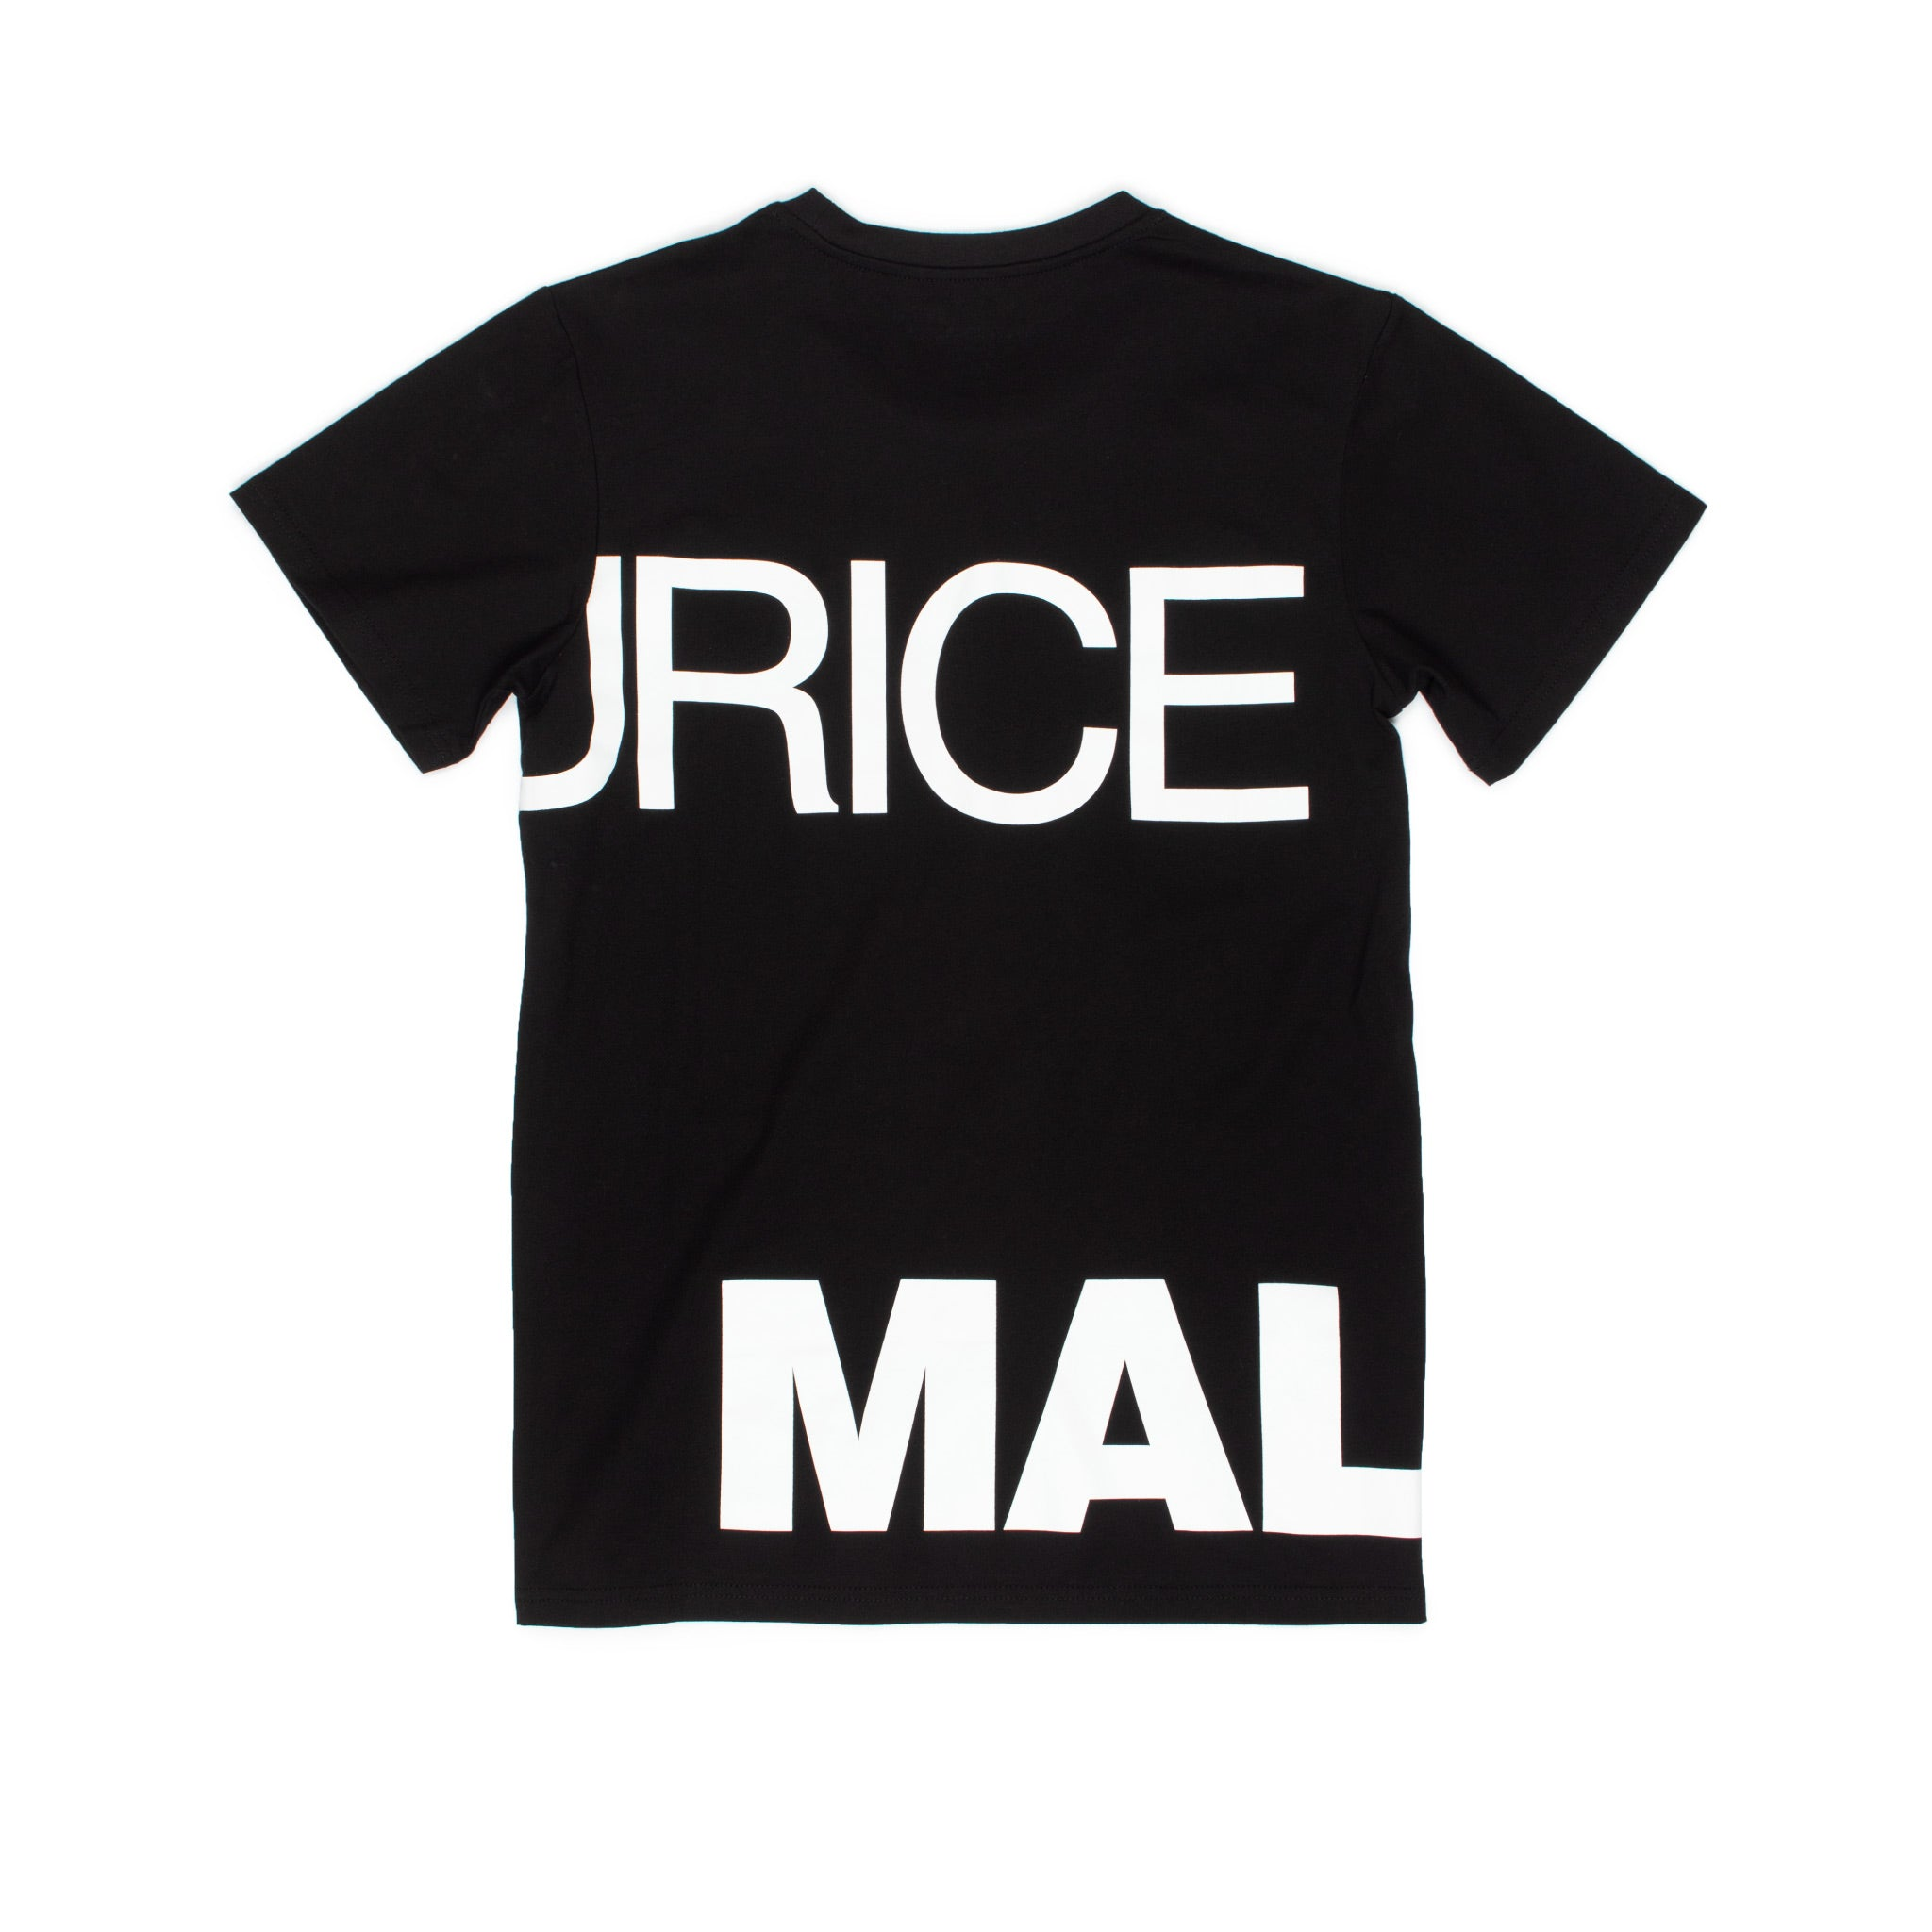 Rear of black t-shirt with Maurice Malone logo